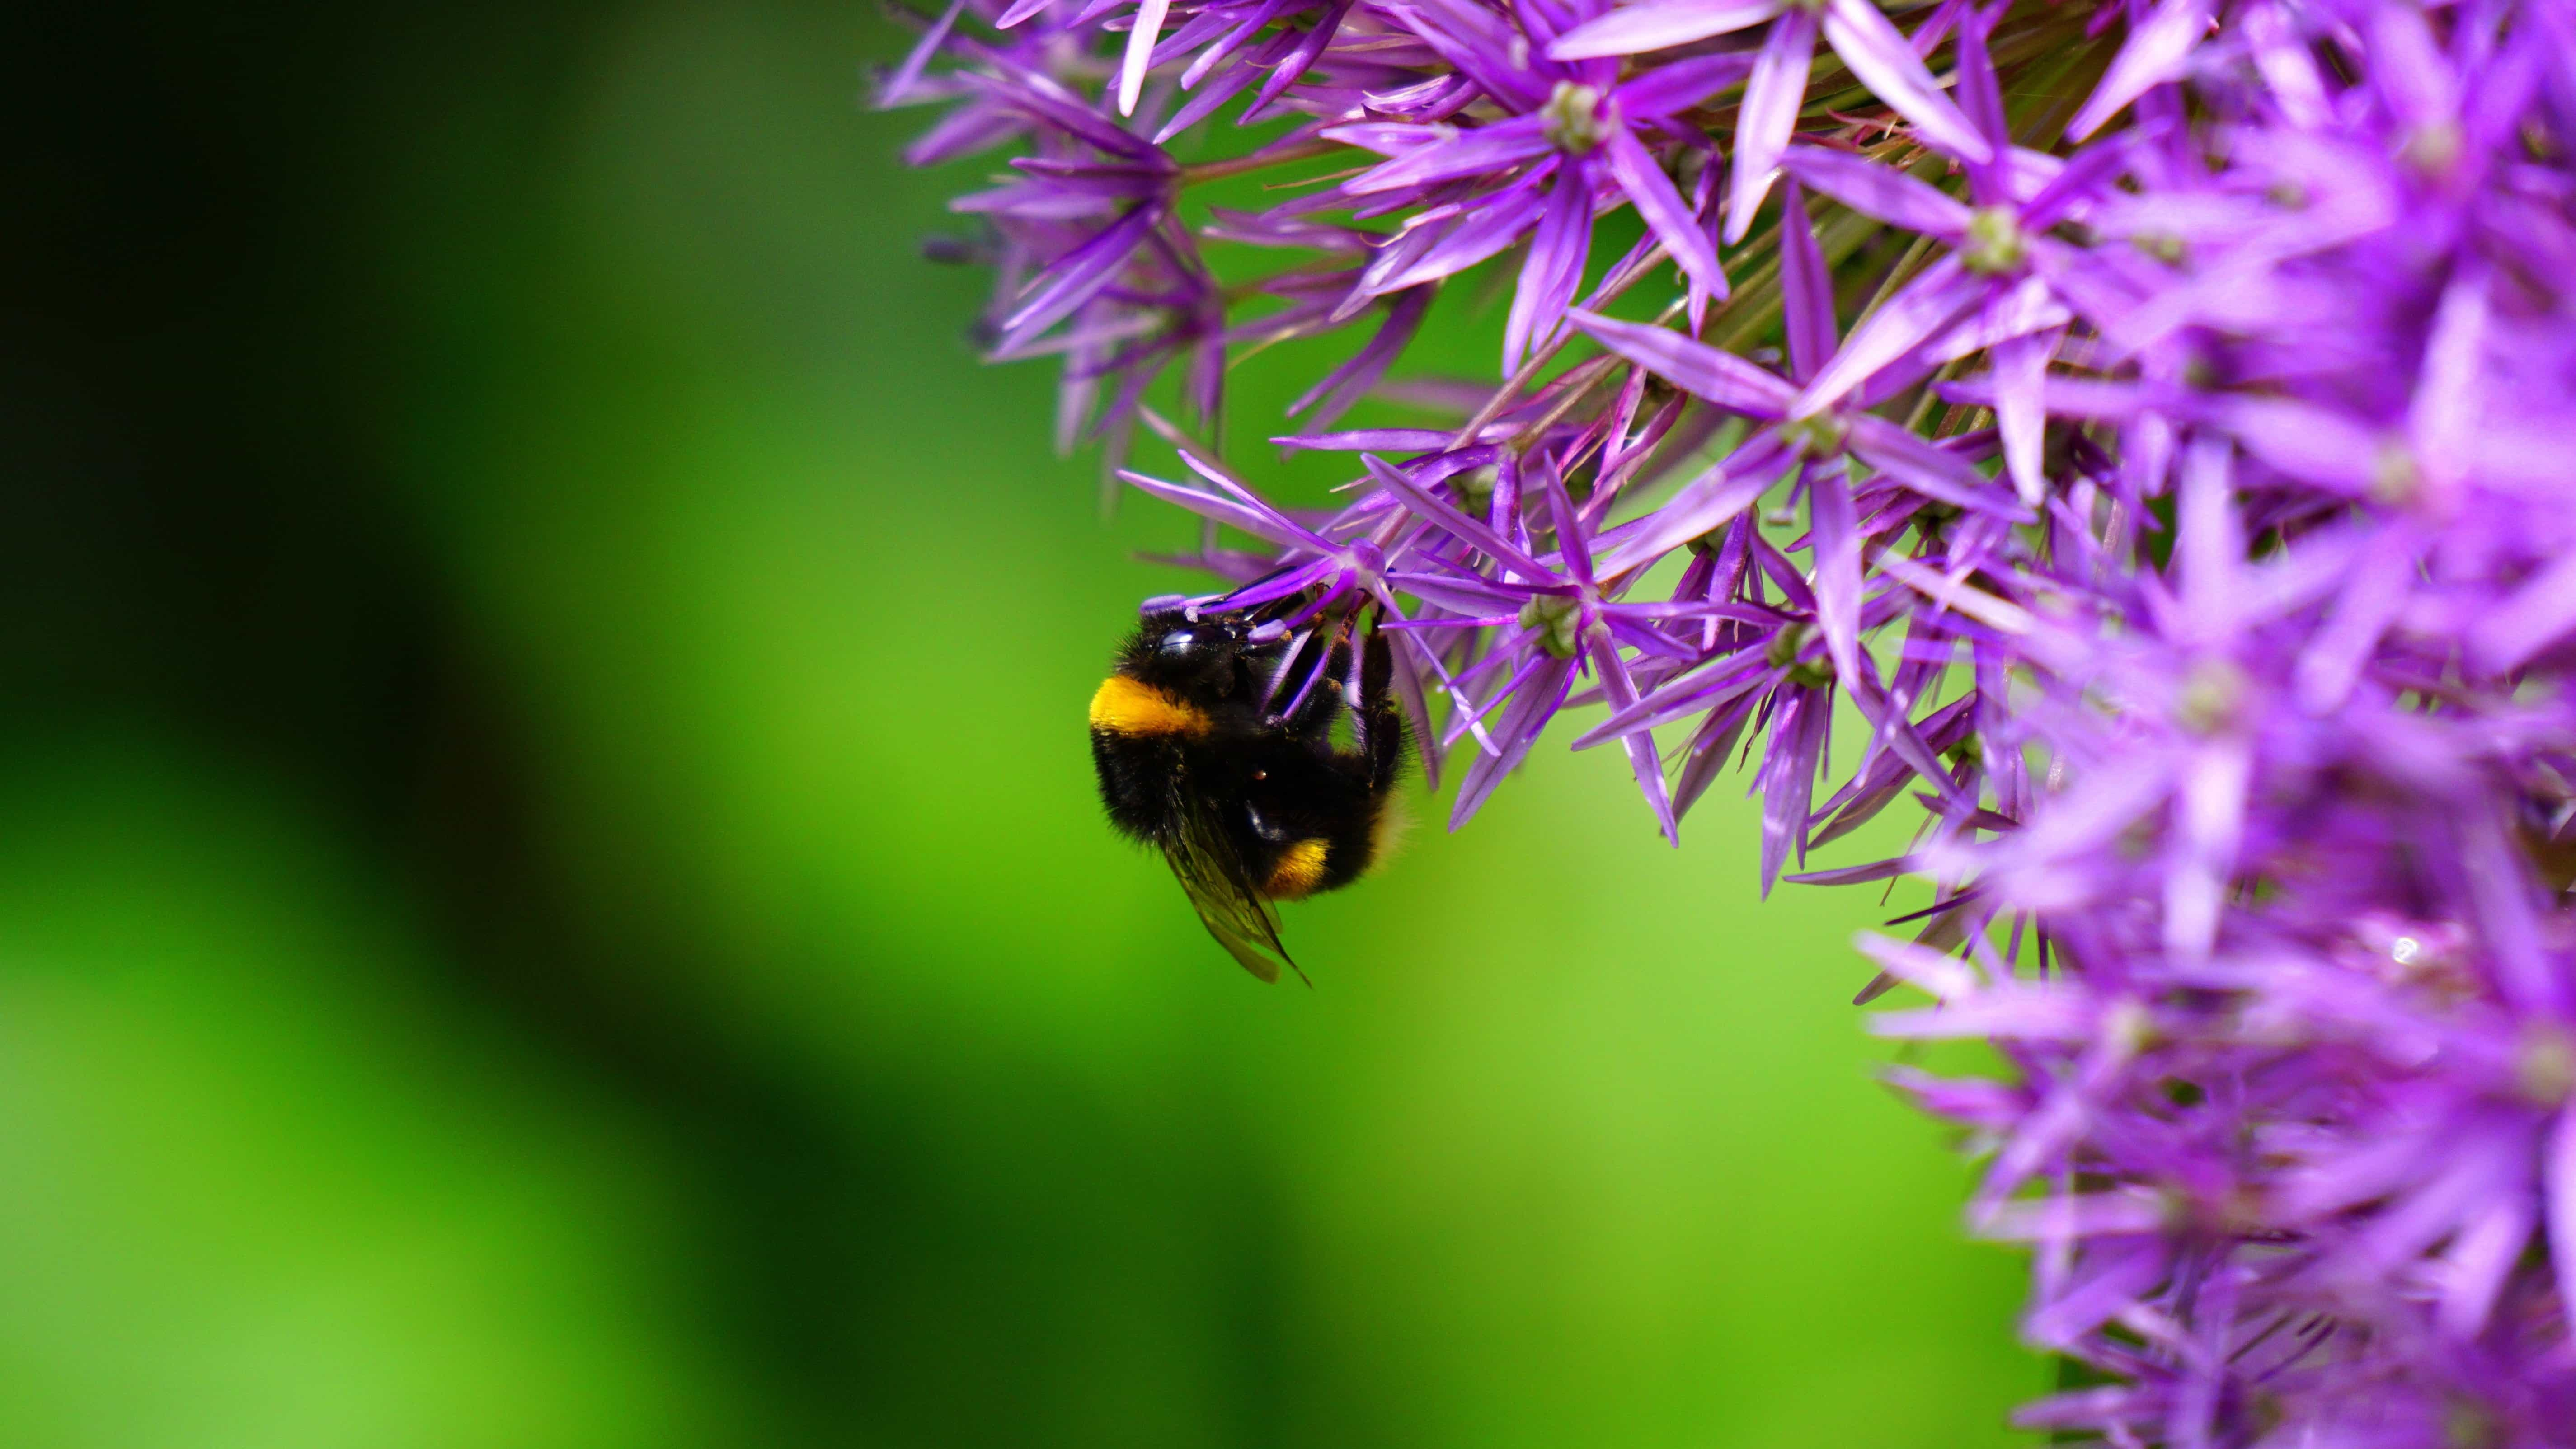 Free picture: nature, insect, macro, summer, pollination ...